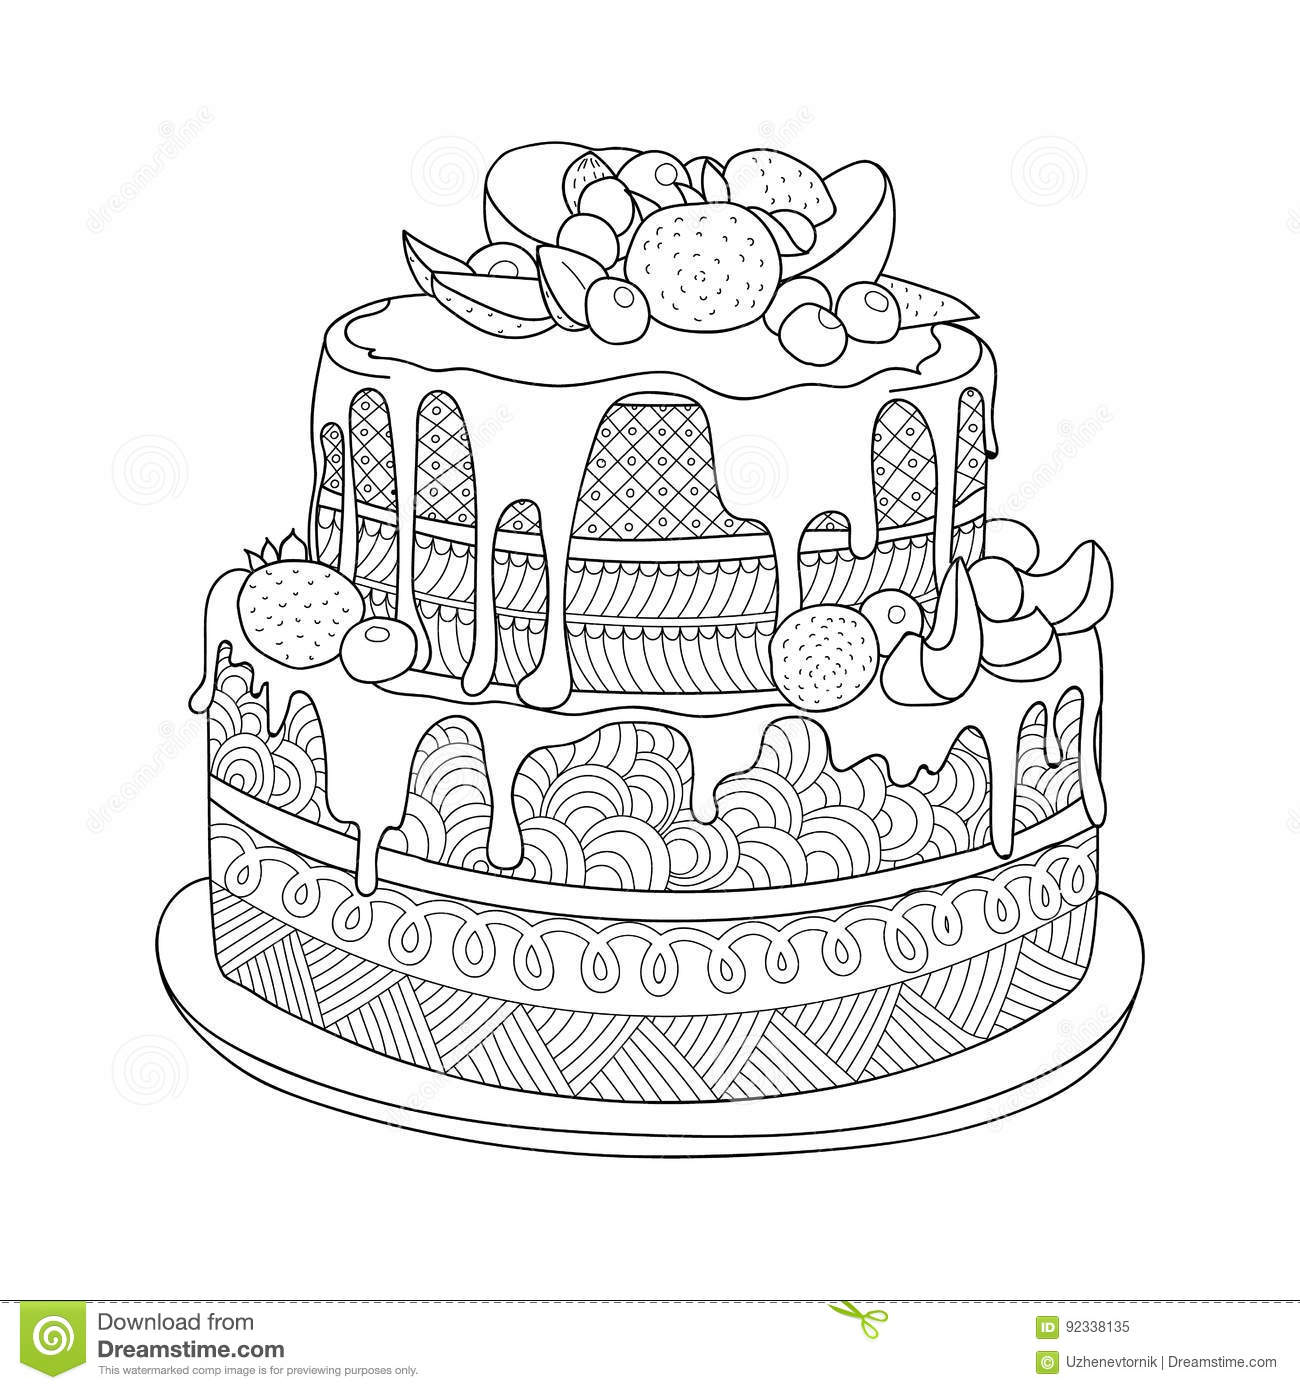 Cake for coloring book stock illustration. Illustration of ...